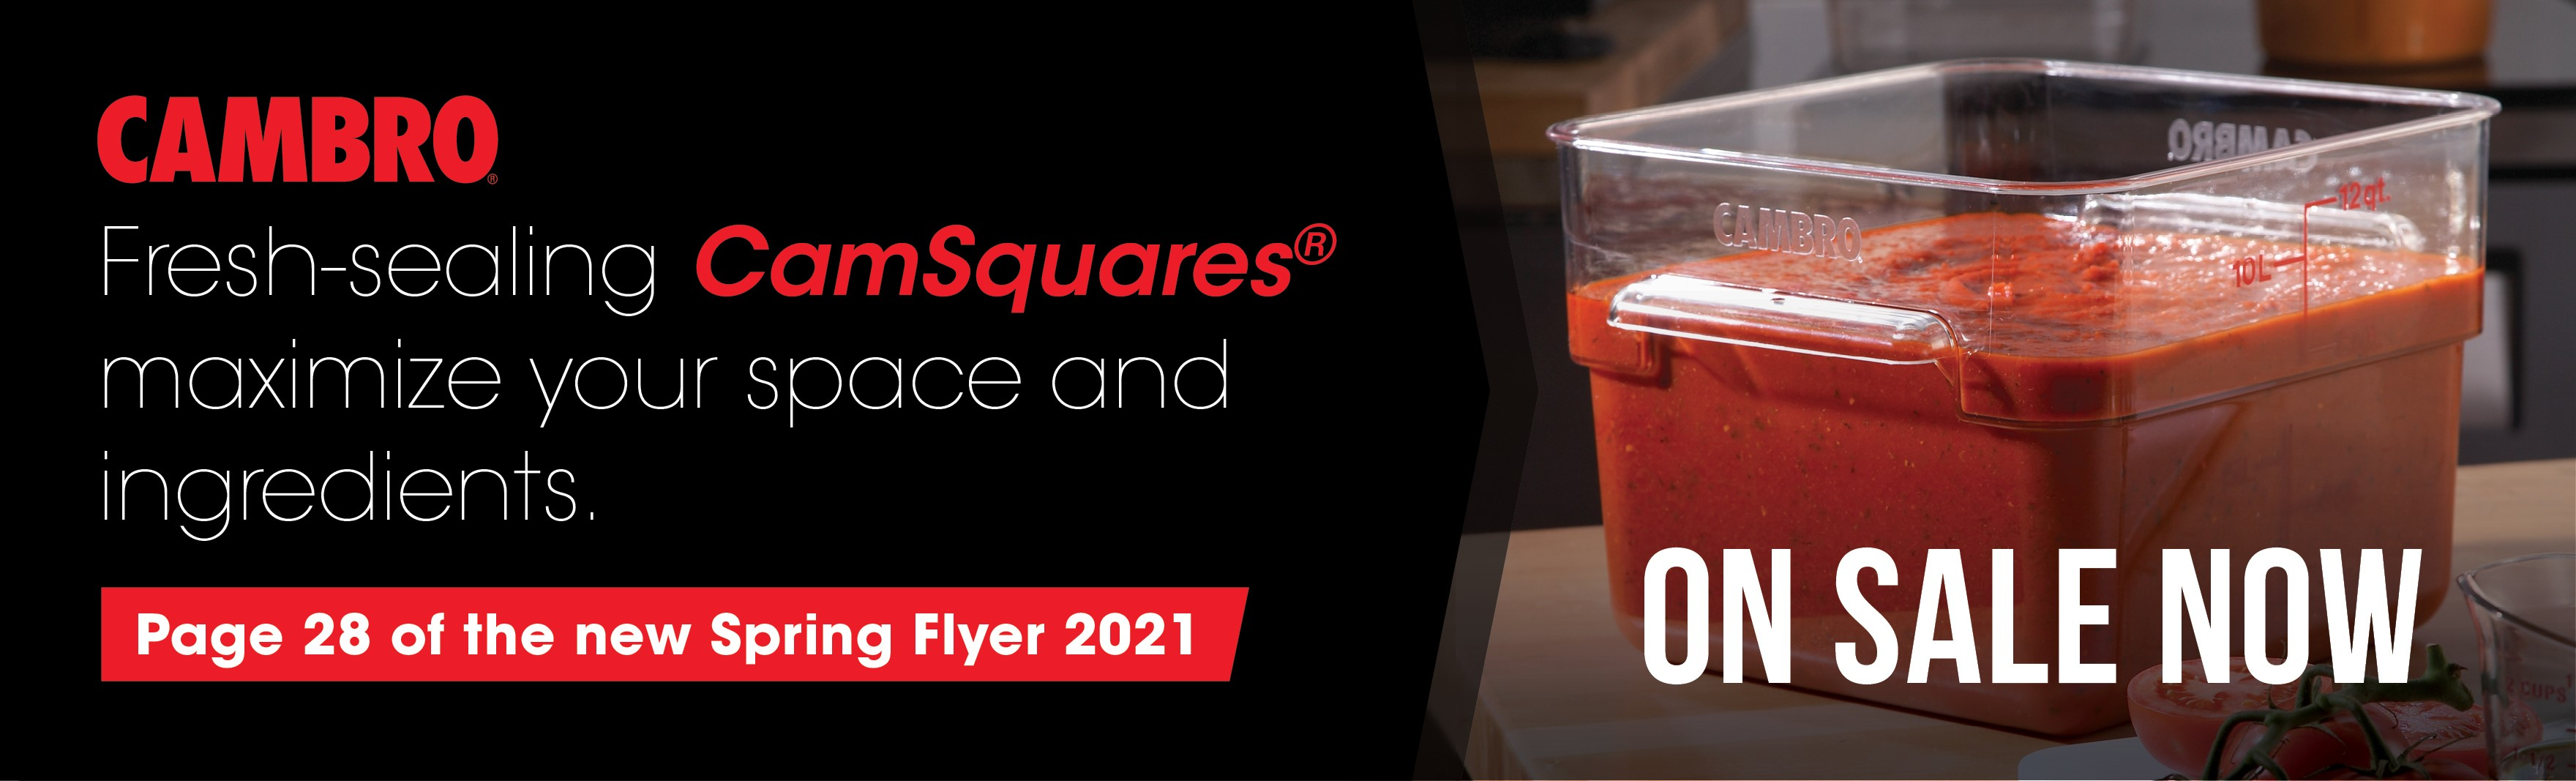 Cambro CamSquares in the 2021 Spring Flyer!